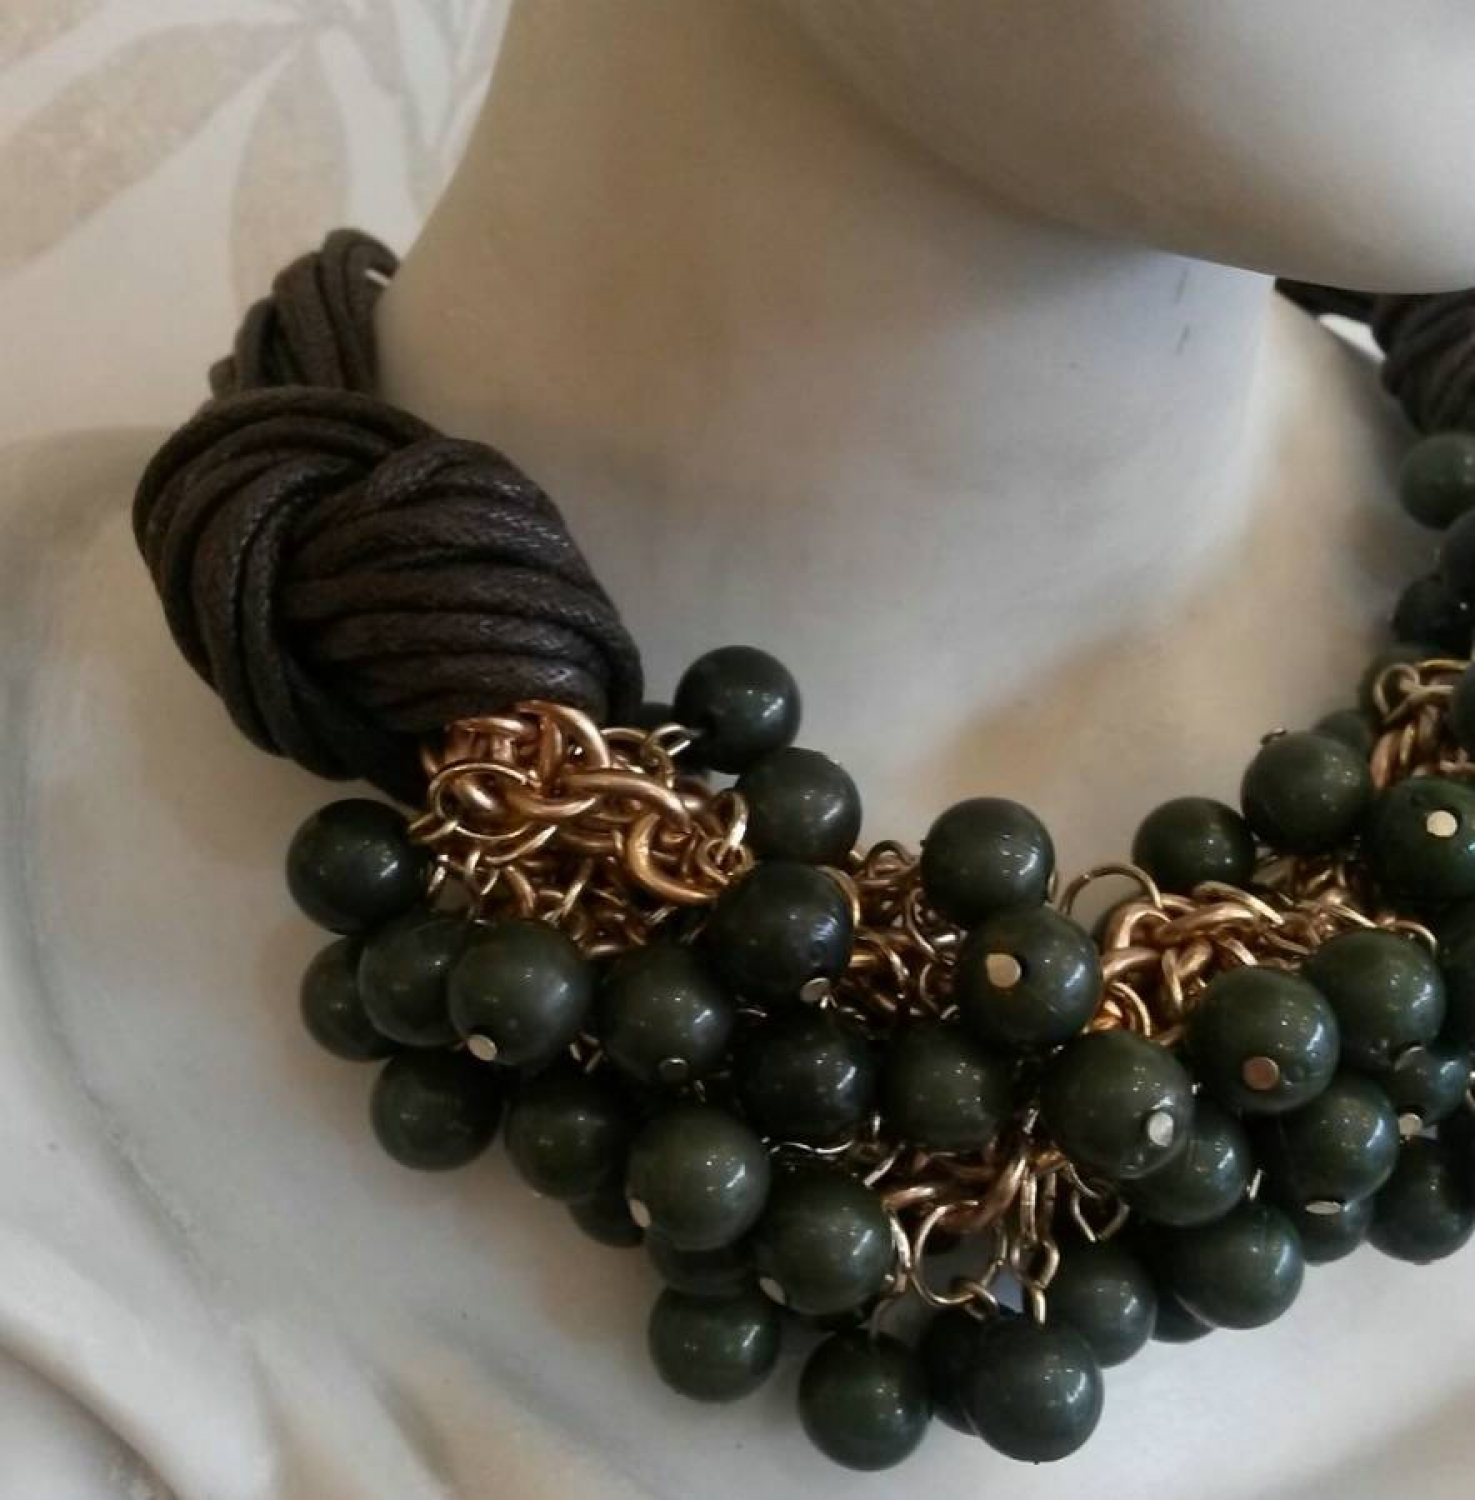 Spanish green wooden bead necklace with rope chain